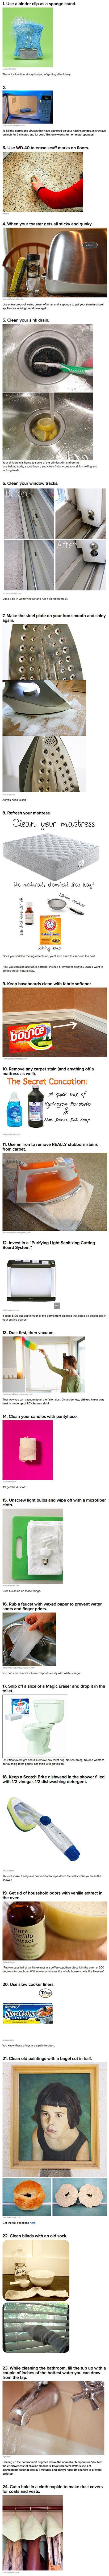 Here are some extremely useful cleaning life hacks to help geeks get organized this weekend.: